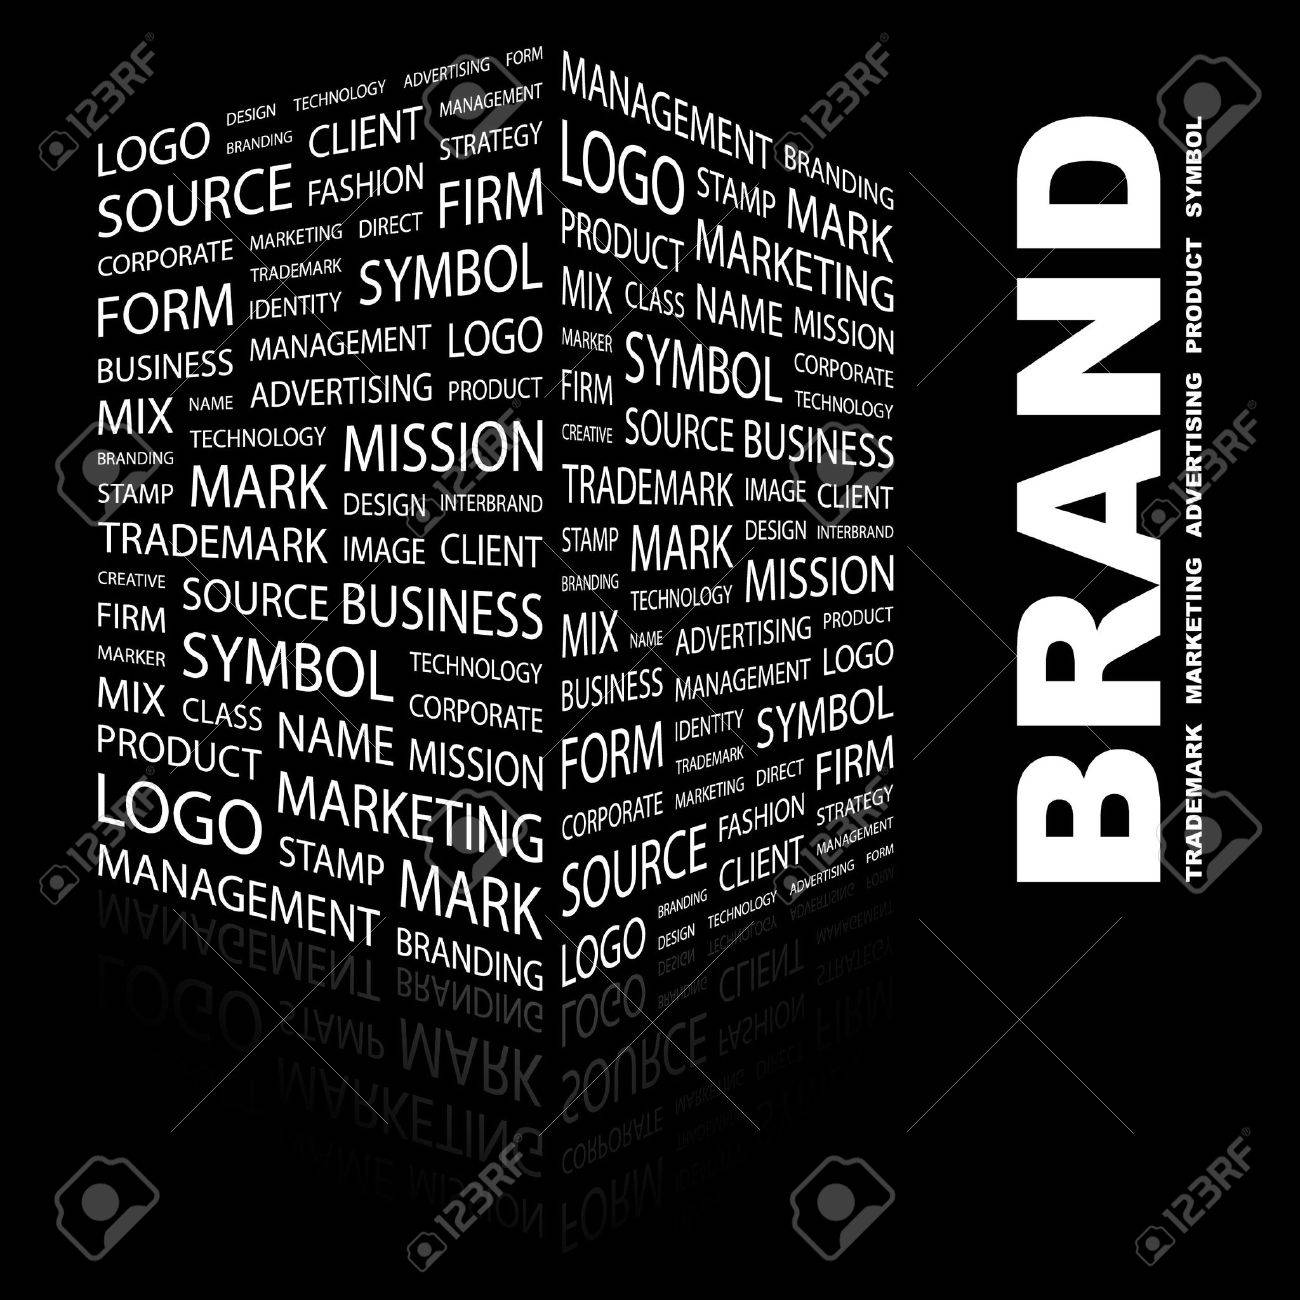 BRAND. Word collage on black background. illustration. Stock Vector - 7357229